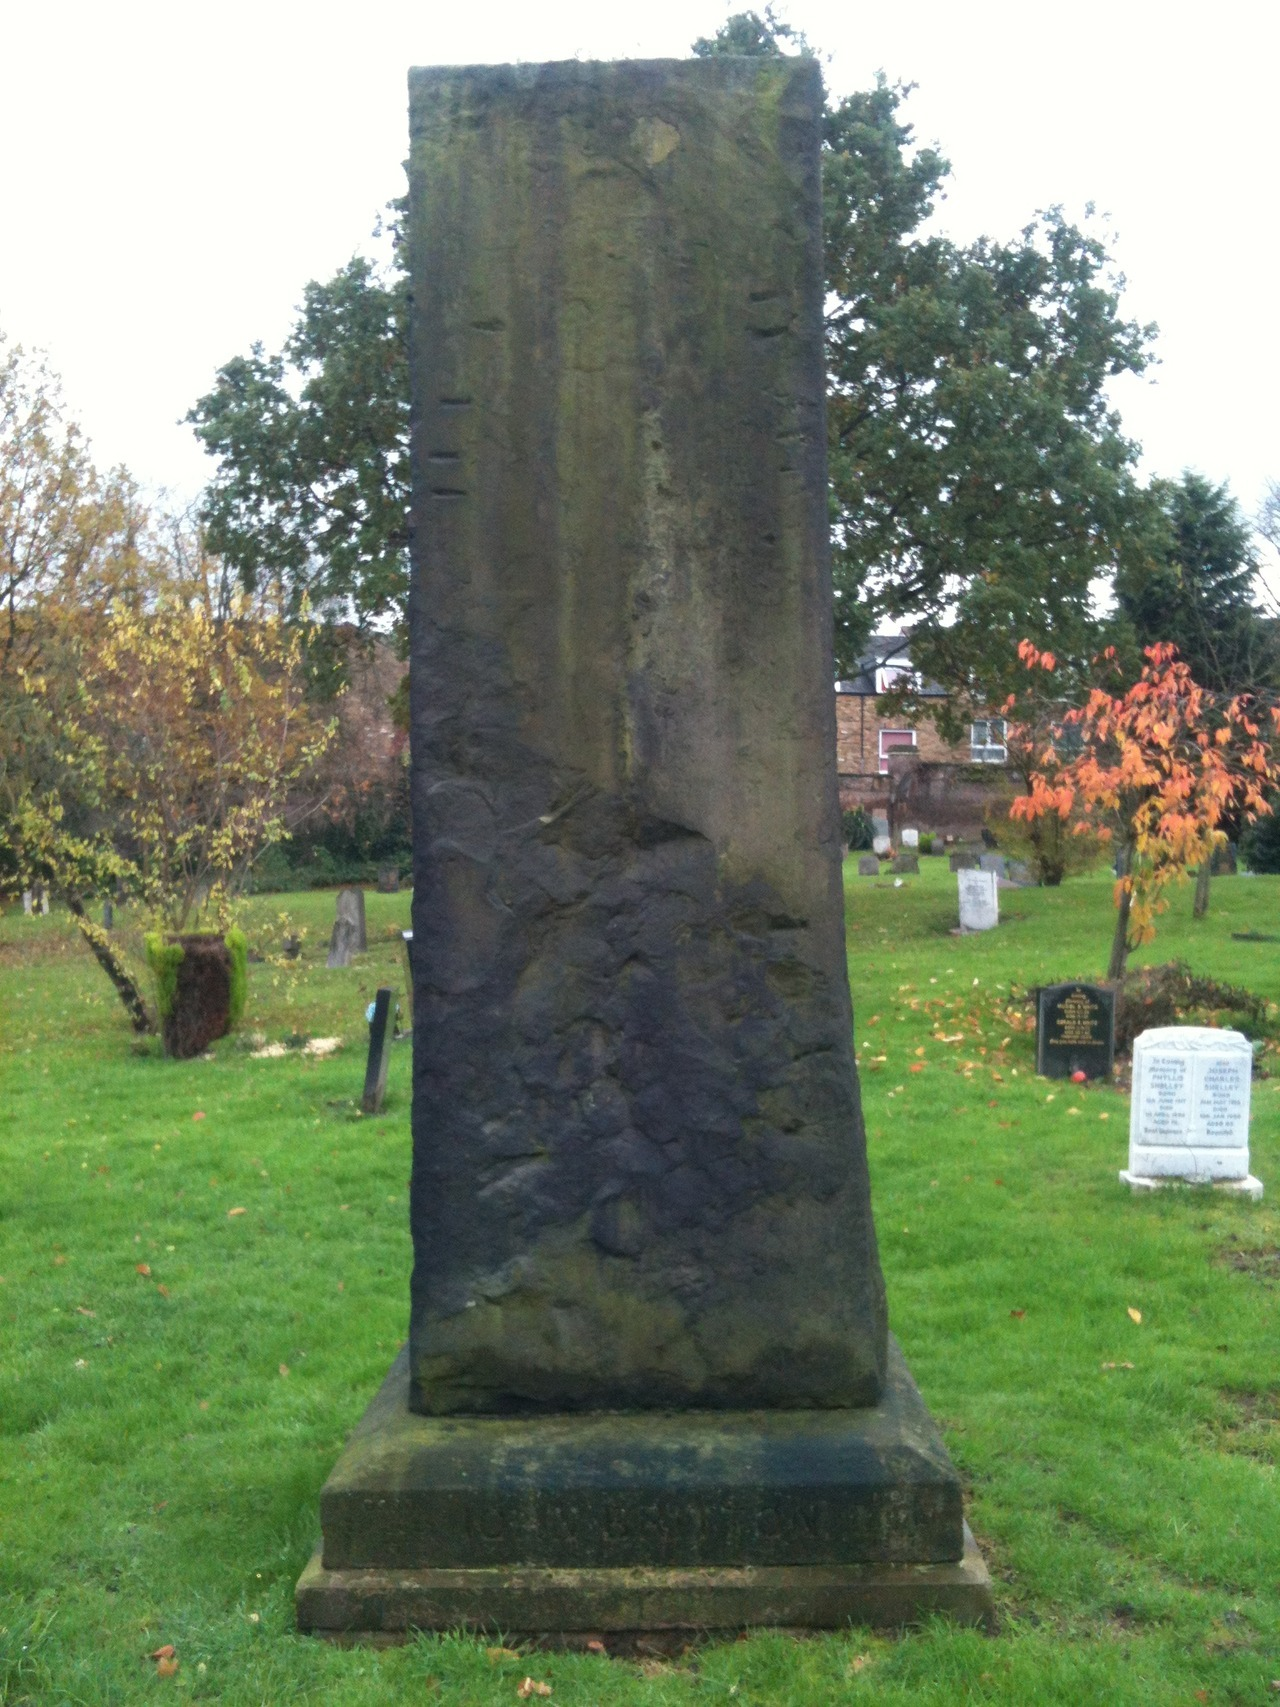 John Britton's tombstone in West Norwood Cemetary. It's modeled on the standing stones of Stonehenge. The names of two of his series of books are engraved on the sides of the base - 'Architectural Antiquities' (9 volumes) and 'Cathedral Antiquities' (14 volumes).